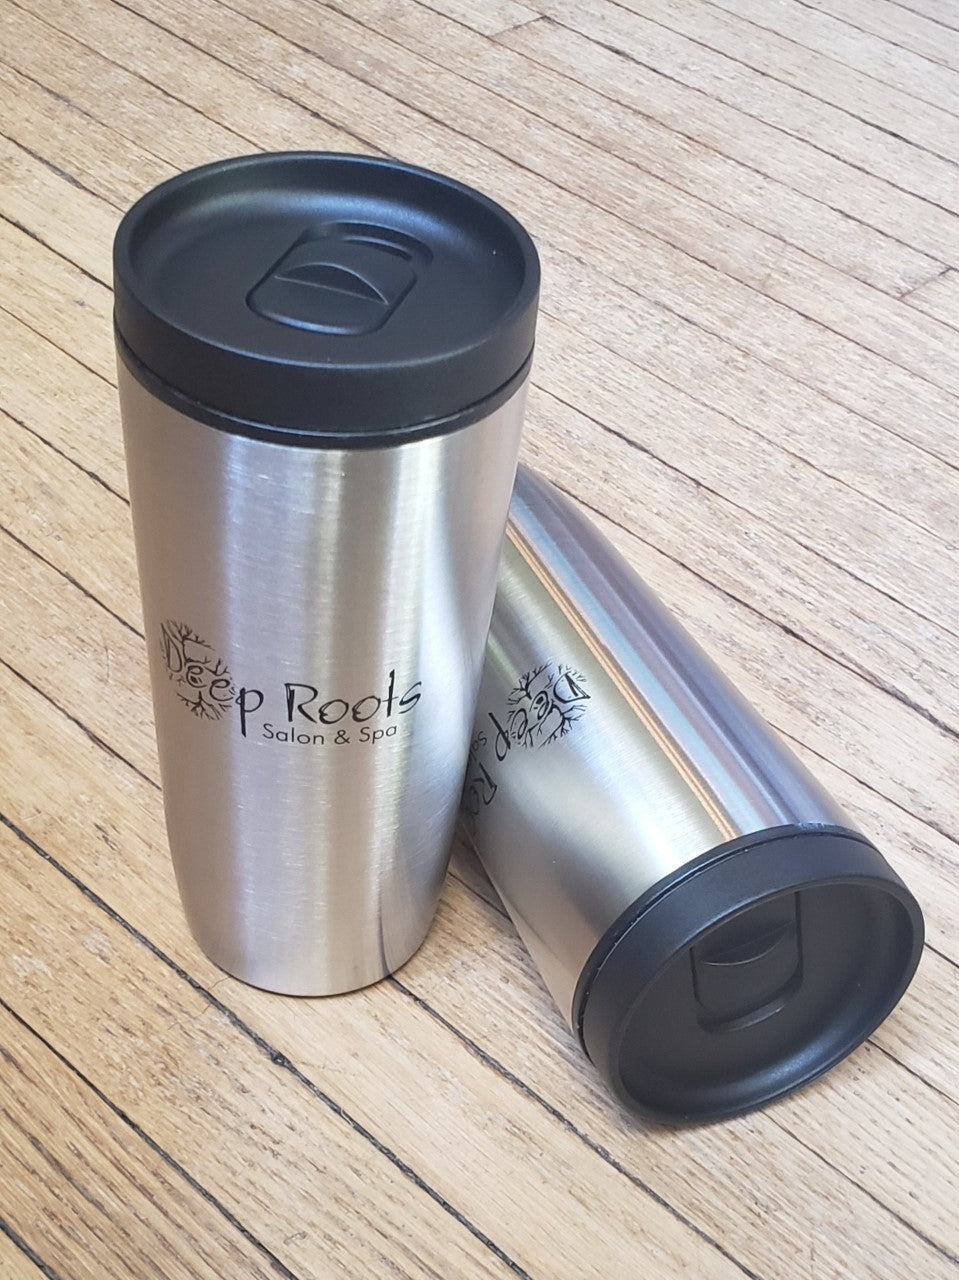 Deep Roots Travel Mug